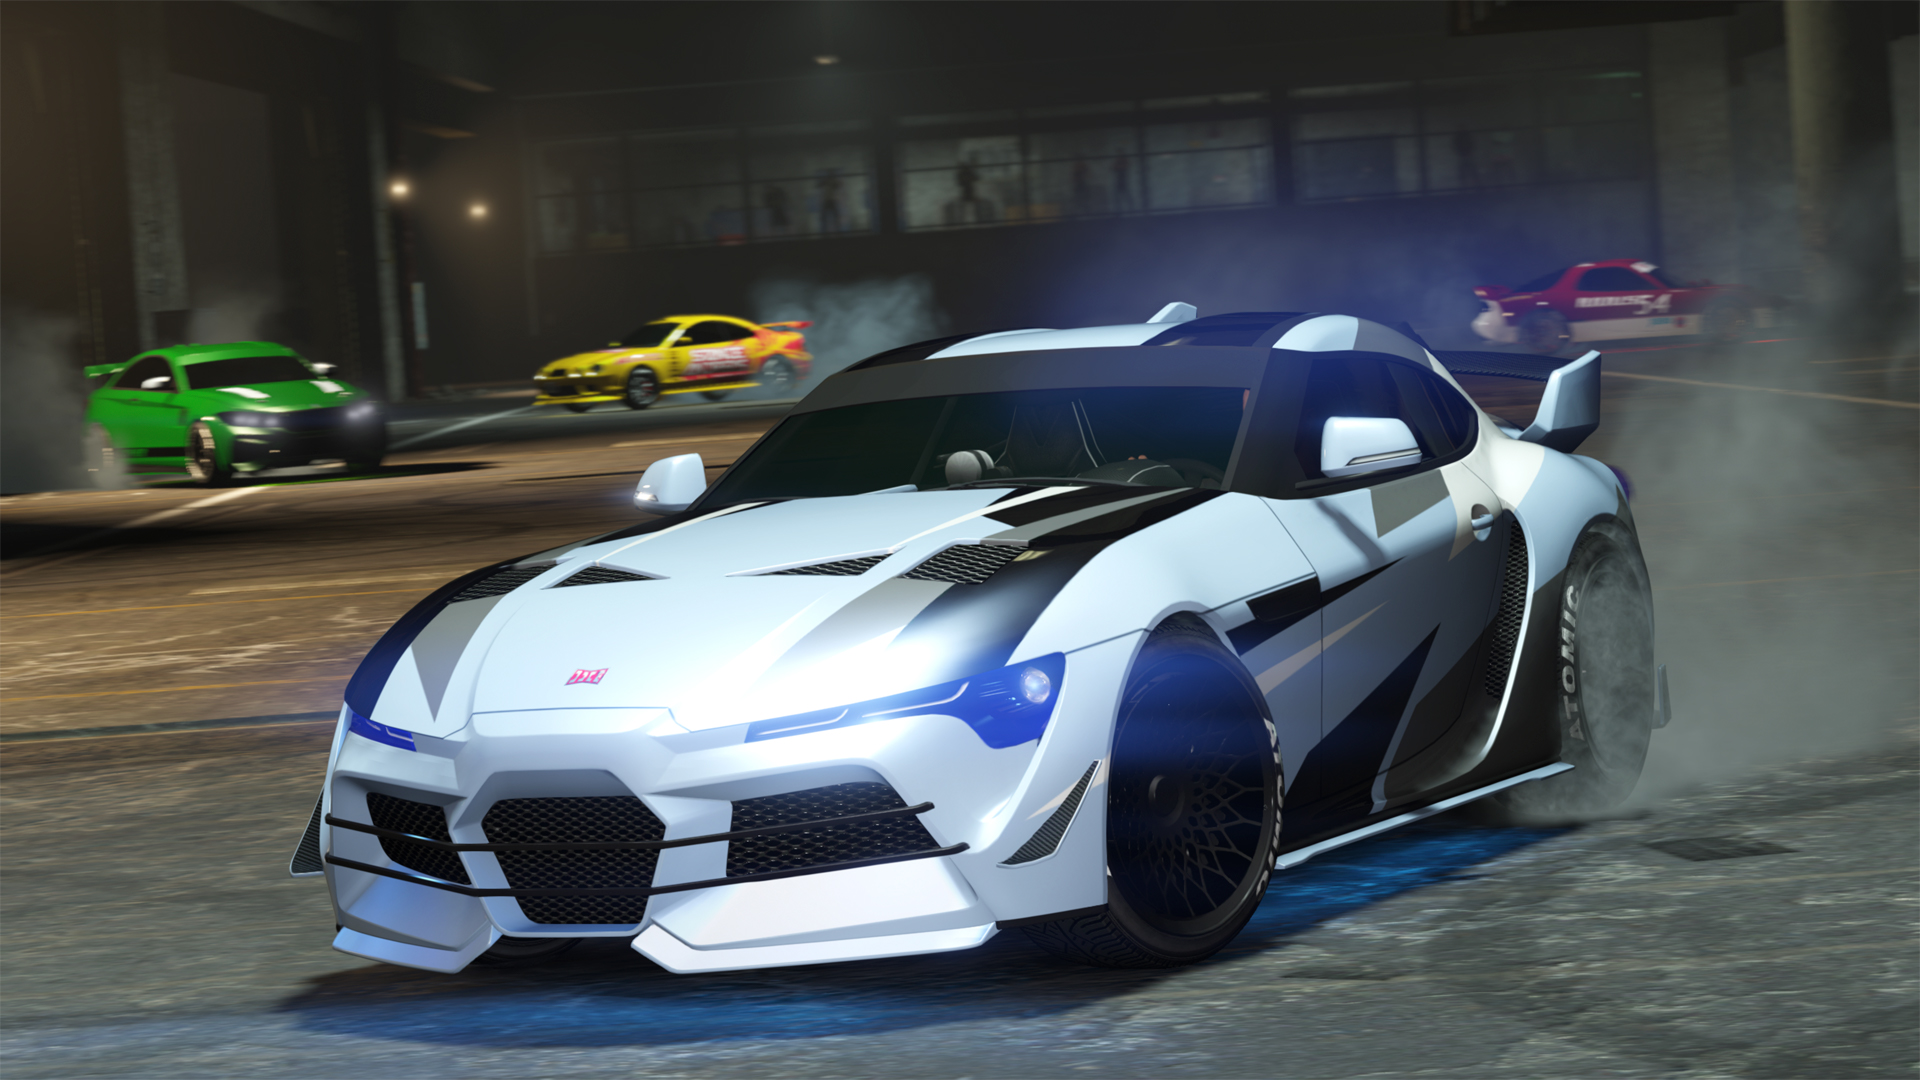 GTA Los Santos Tuners Prize Ride challenges – what is the Prize Ride?